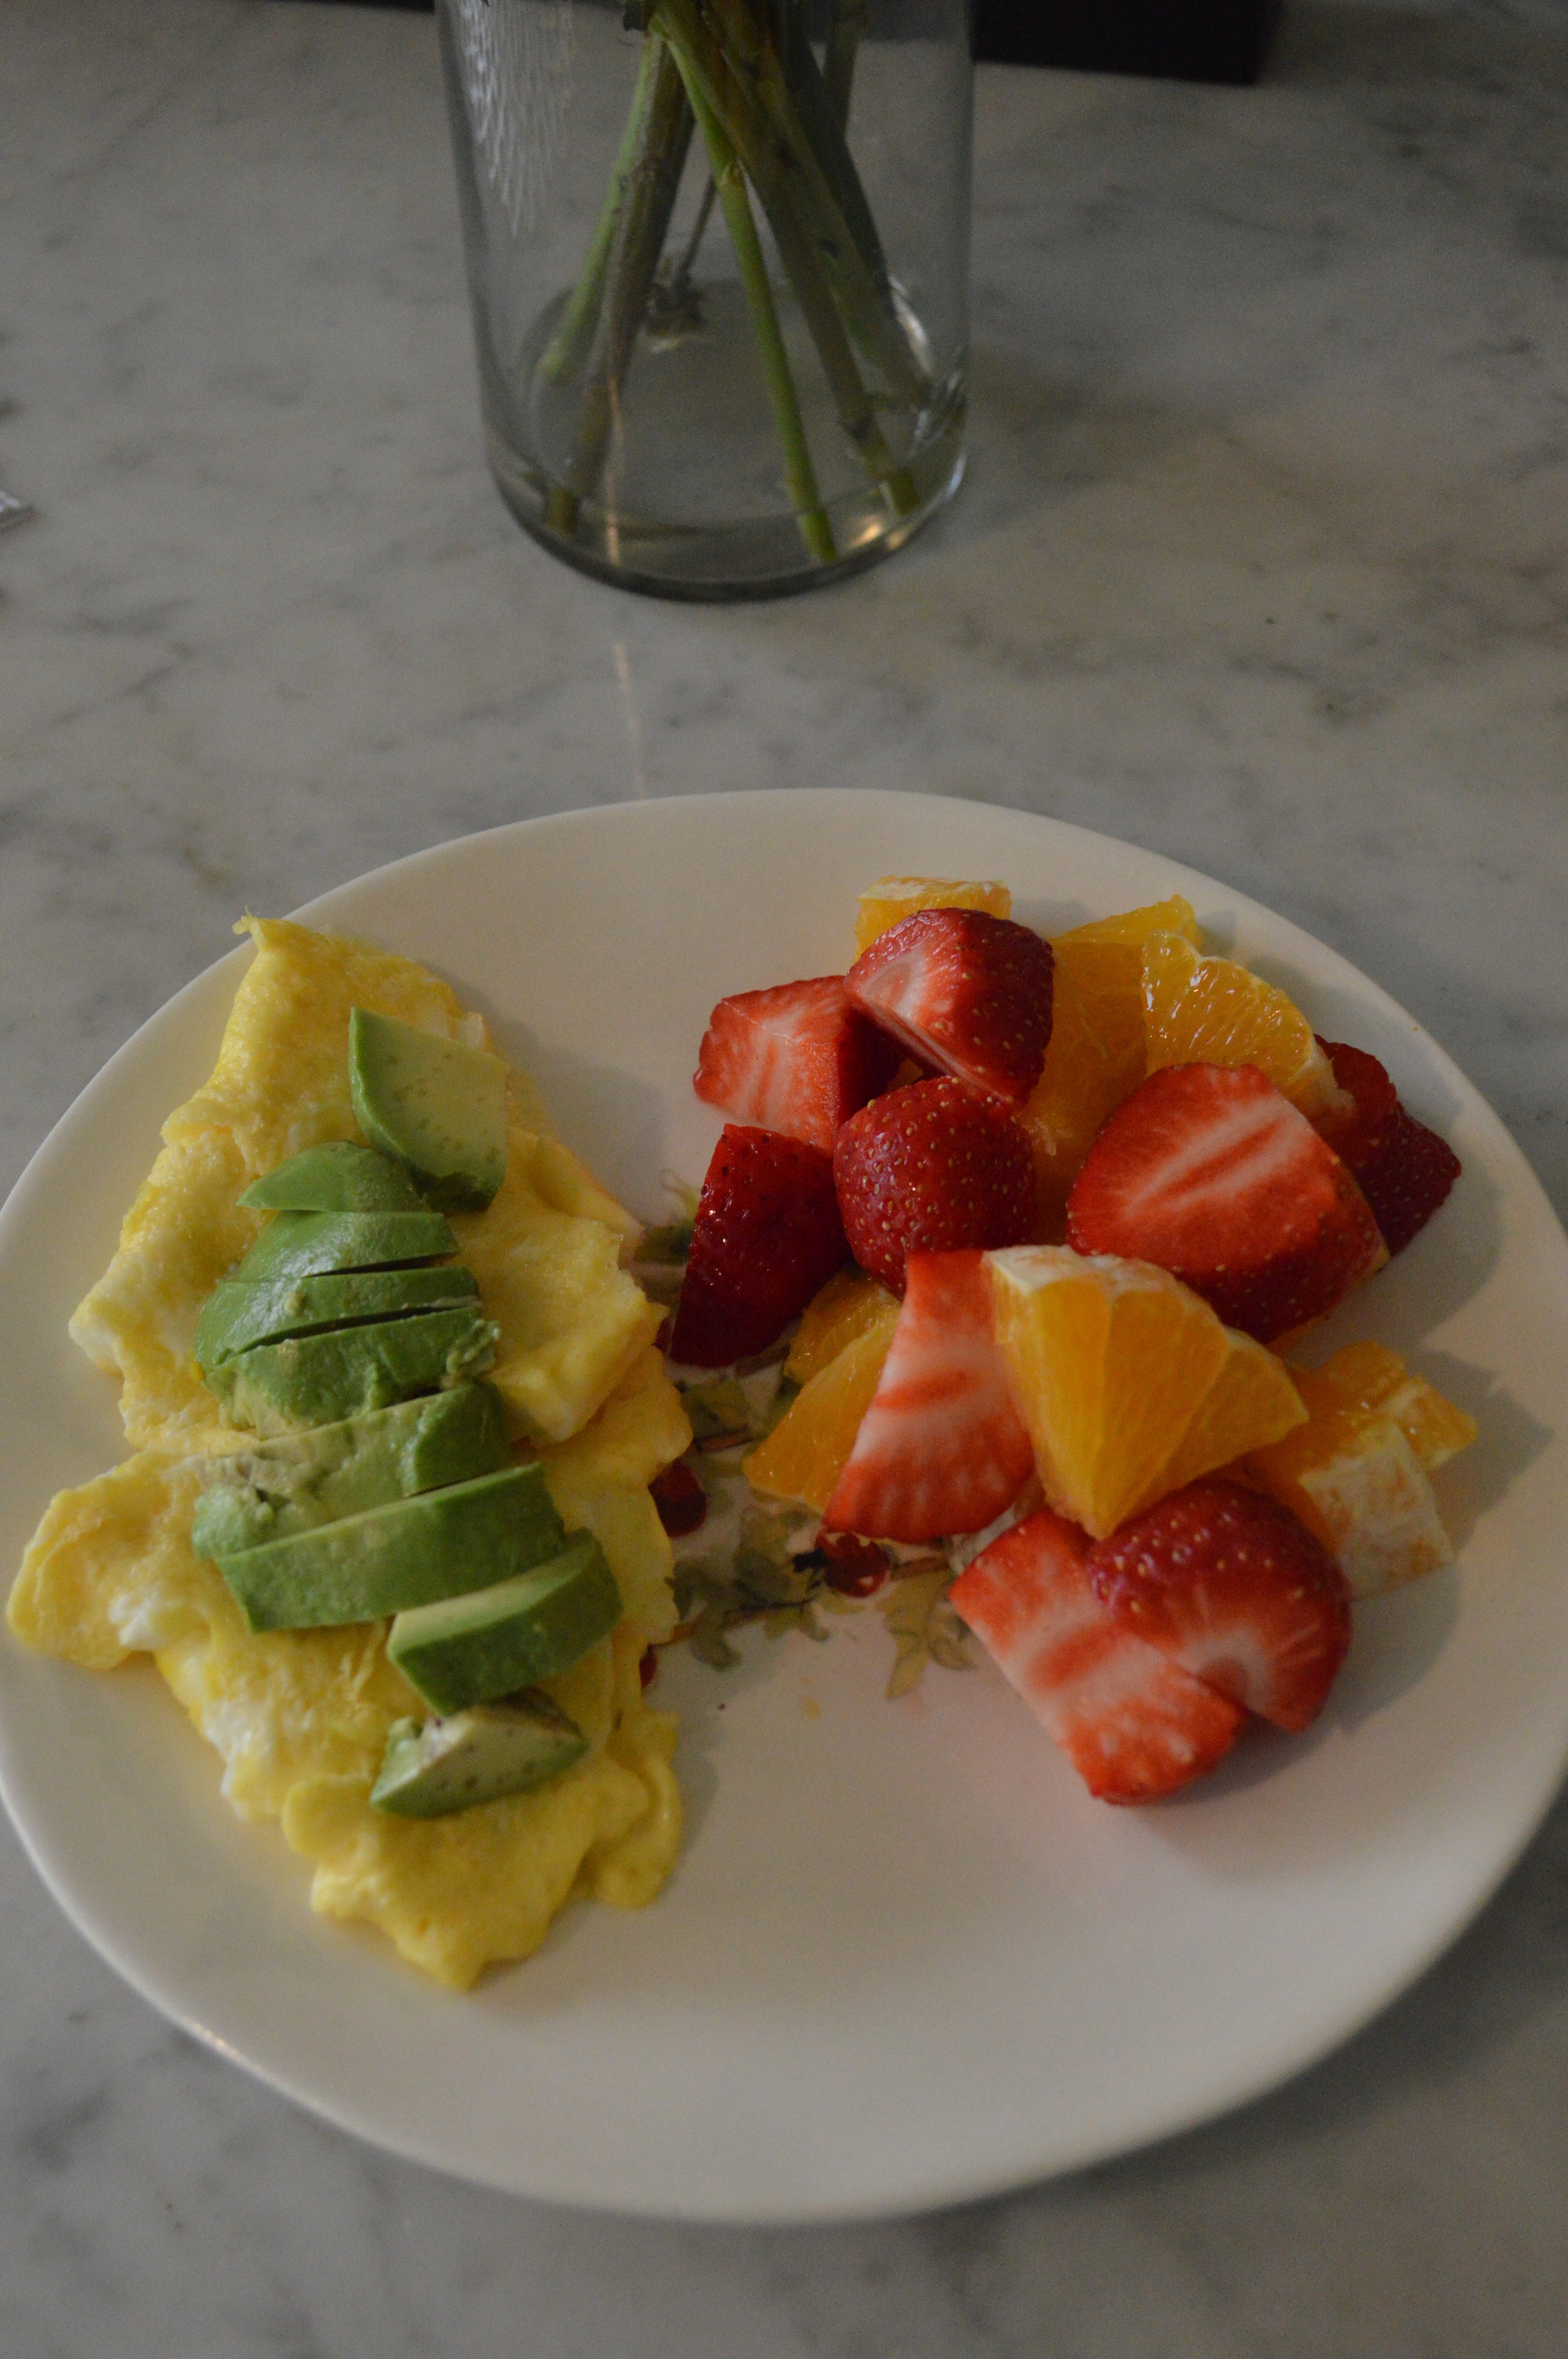 Eggs & Avocado + Fruit